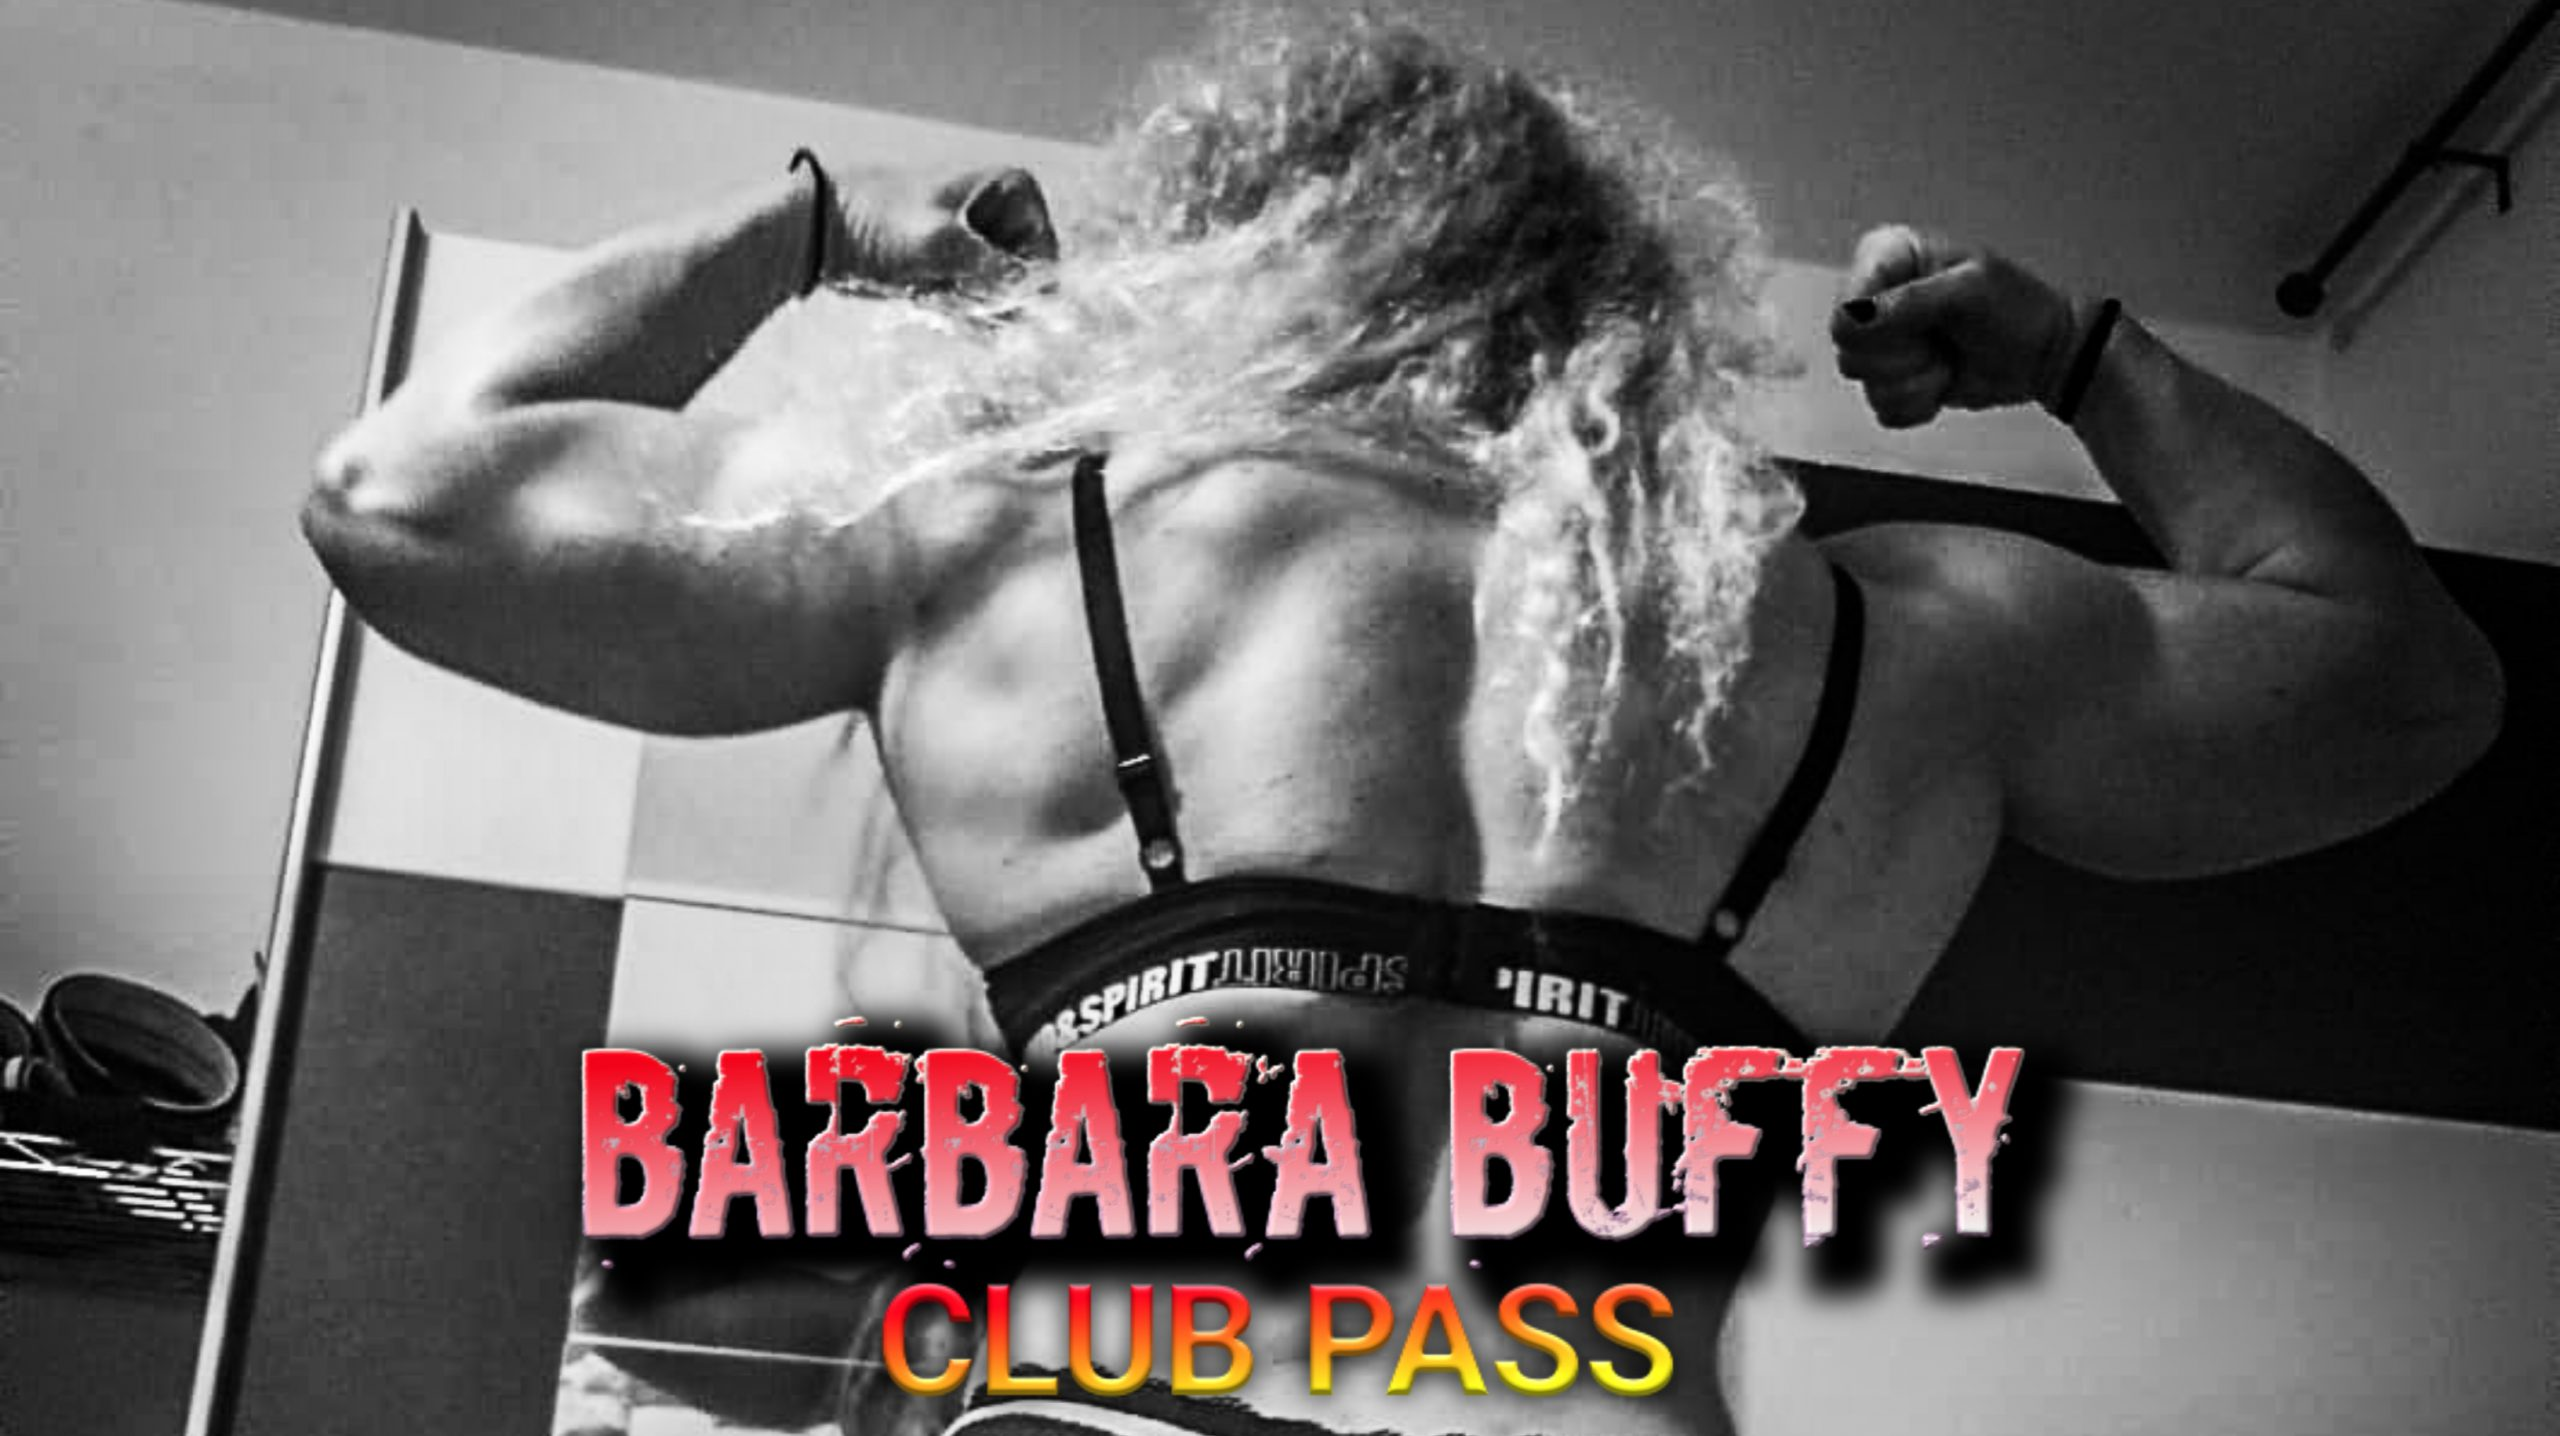 Barbara Buffy Club Pass